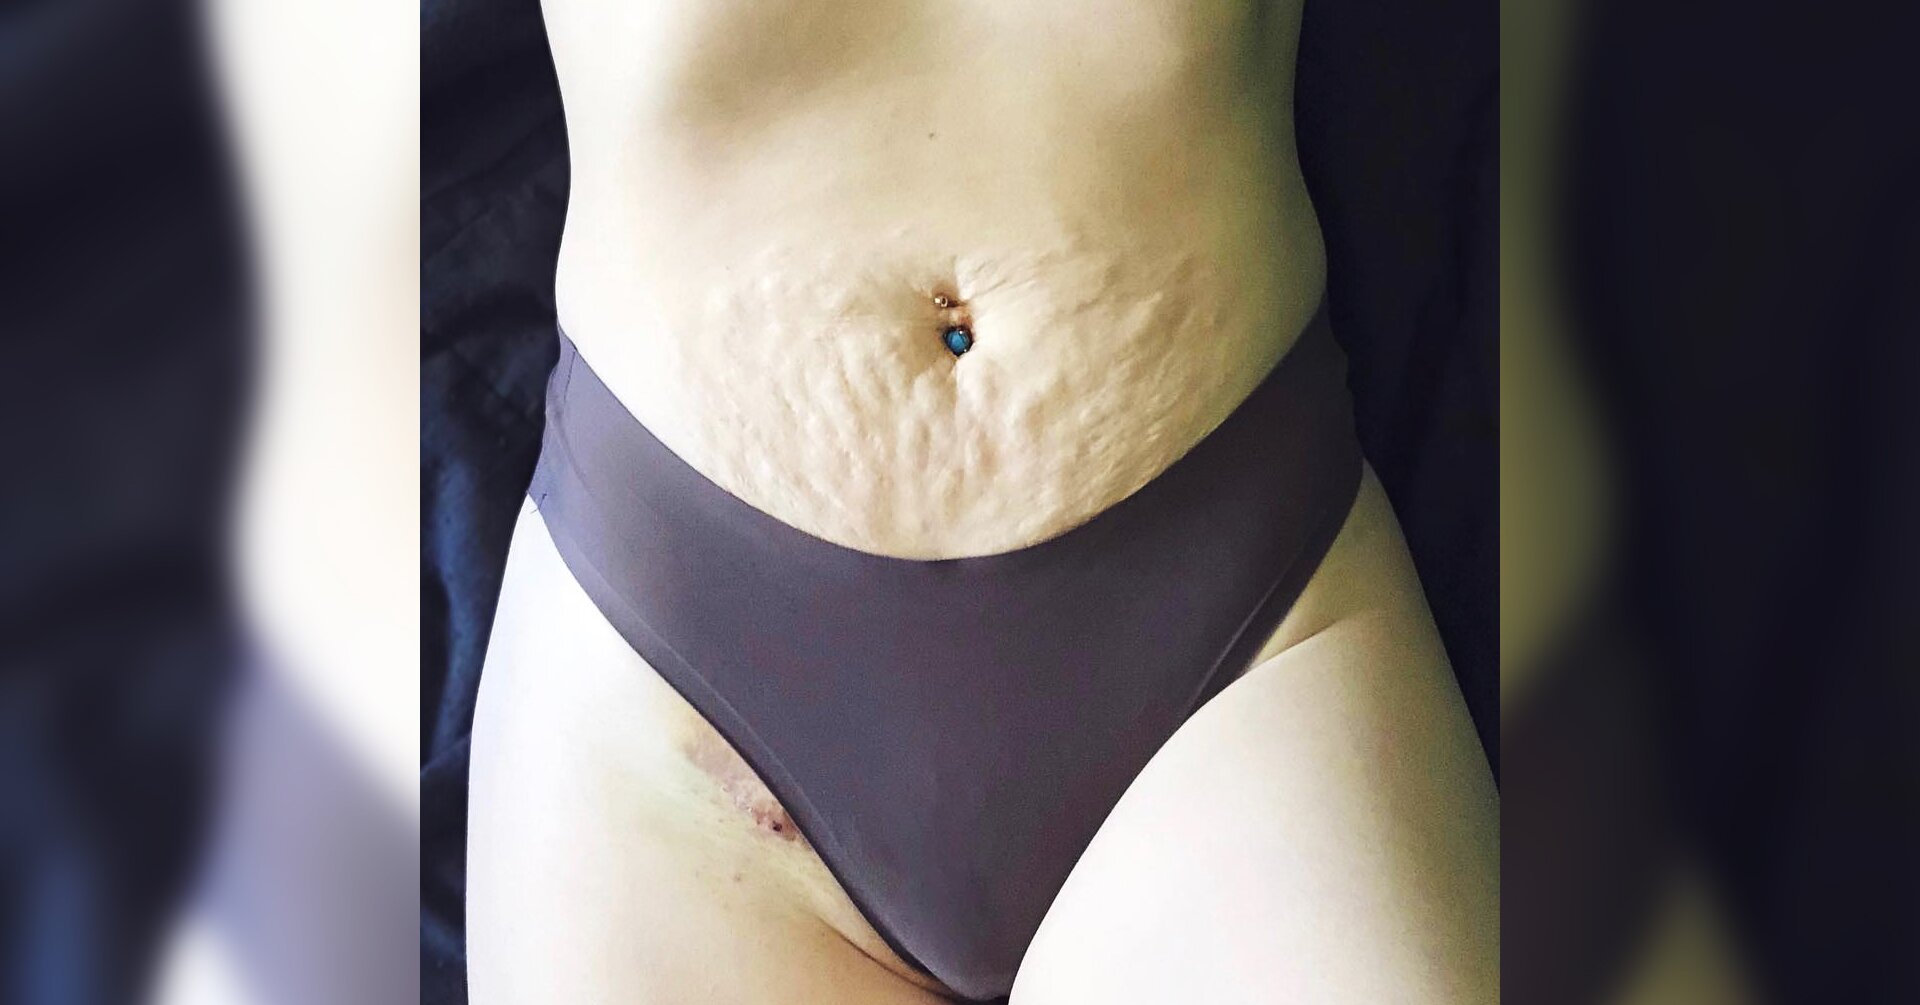 This Mom Shared a Revealing Photo of Her Bikini-Line Scar for a Powerful Reason